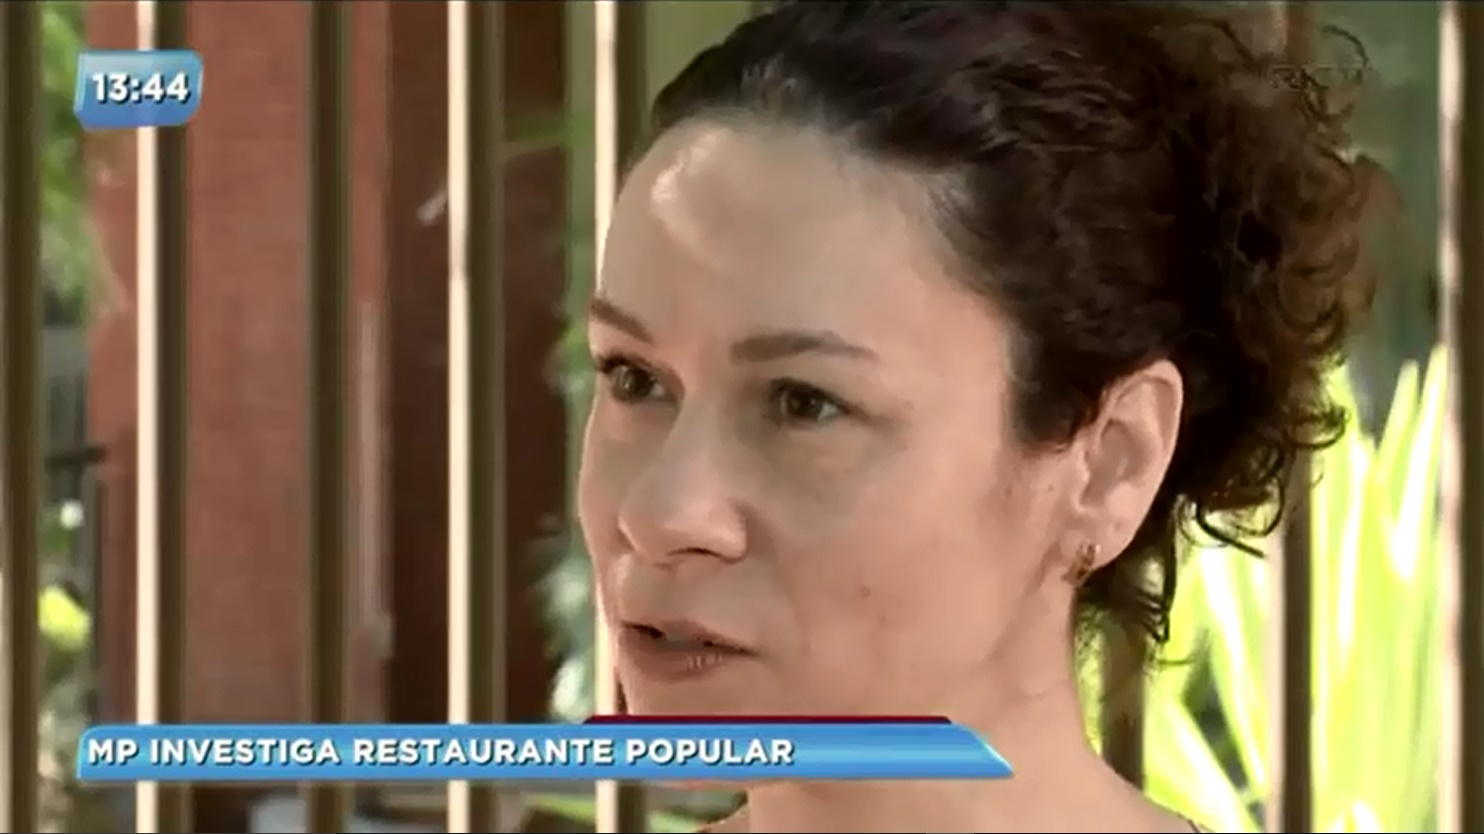 MP Investiga Gastos Com Refeições No Restaurante Popular De Maringá